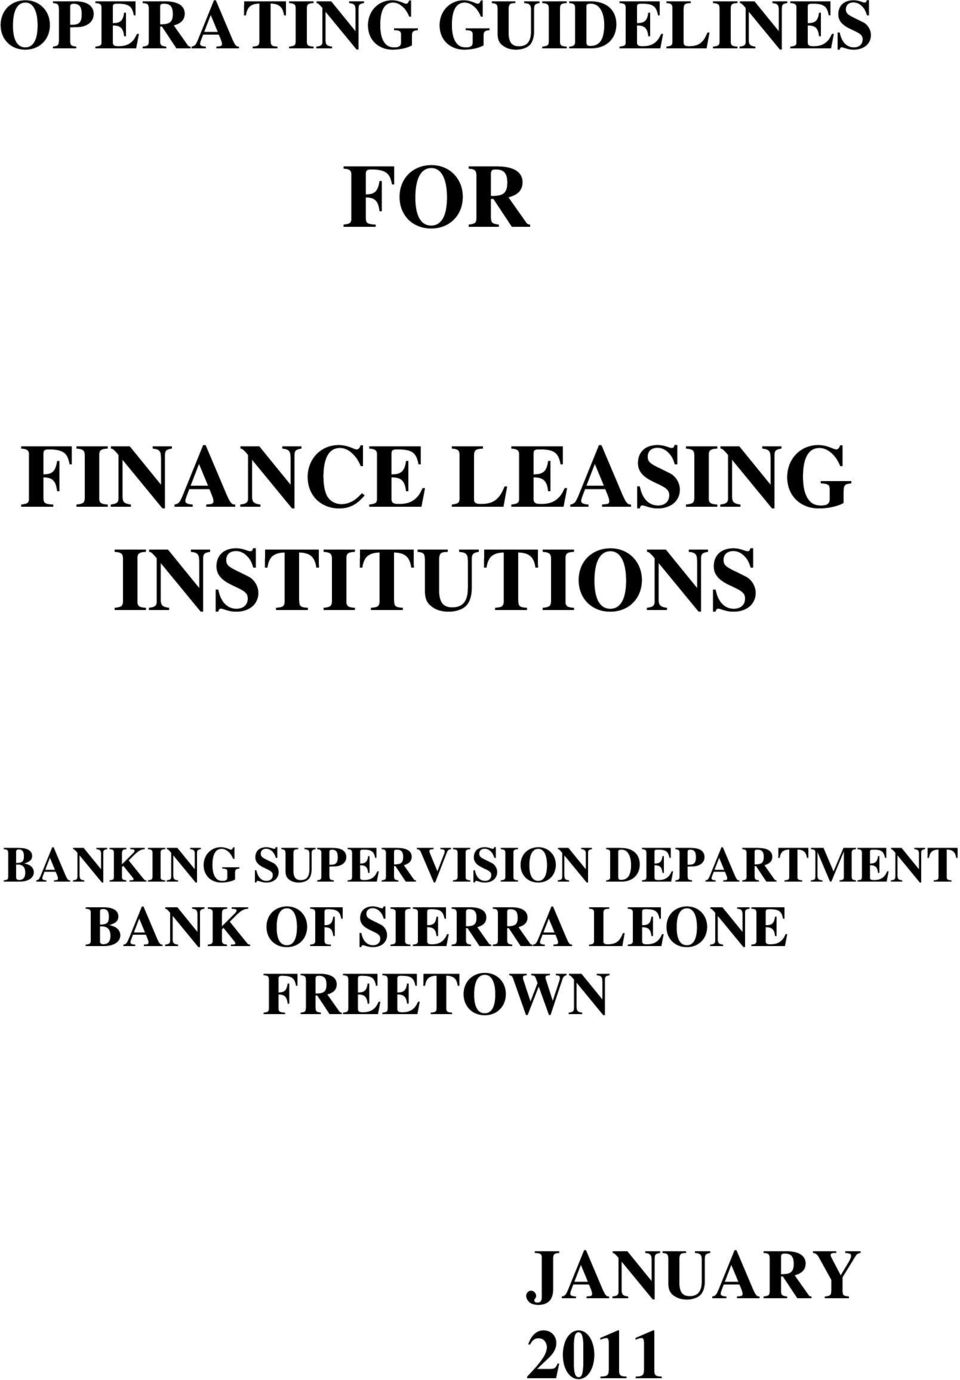 BANKING SUPERVISION DEPARTMENT